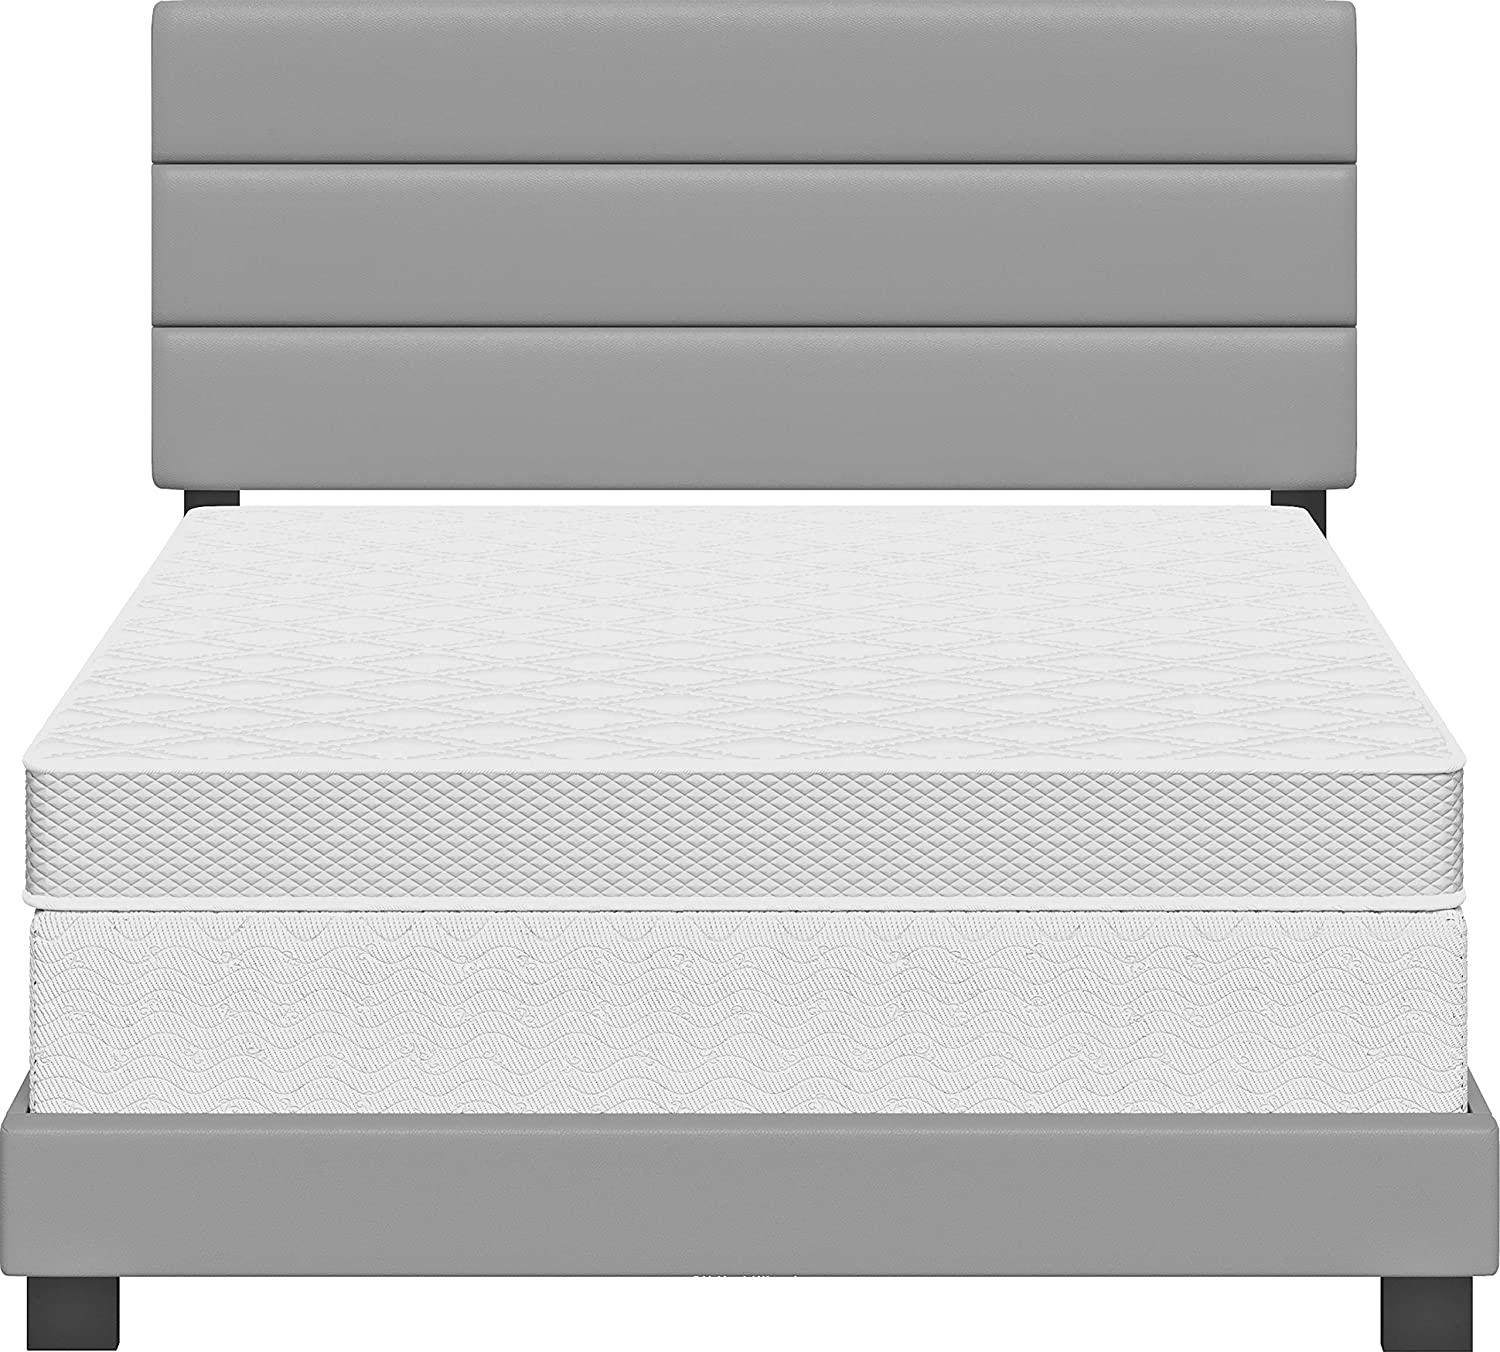 Faux Leather Twin Black Boyd Sleep Montana Upholstered Platform Bed Frame Mattress Foundation with Tri-Panel Headboard and Strong Wood Slat Supports